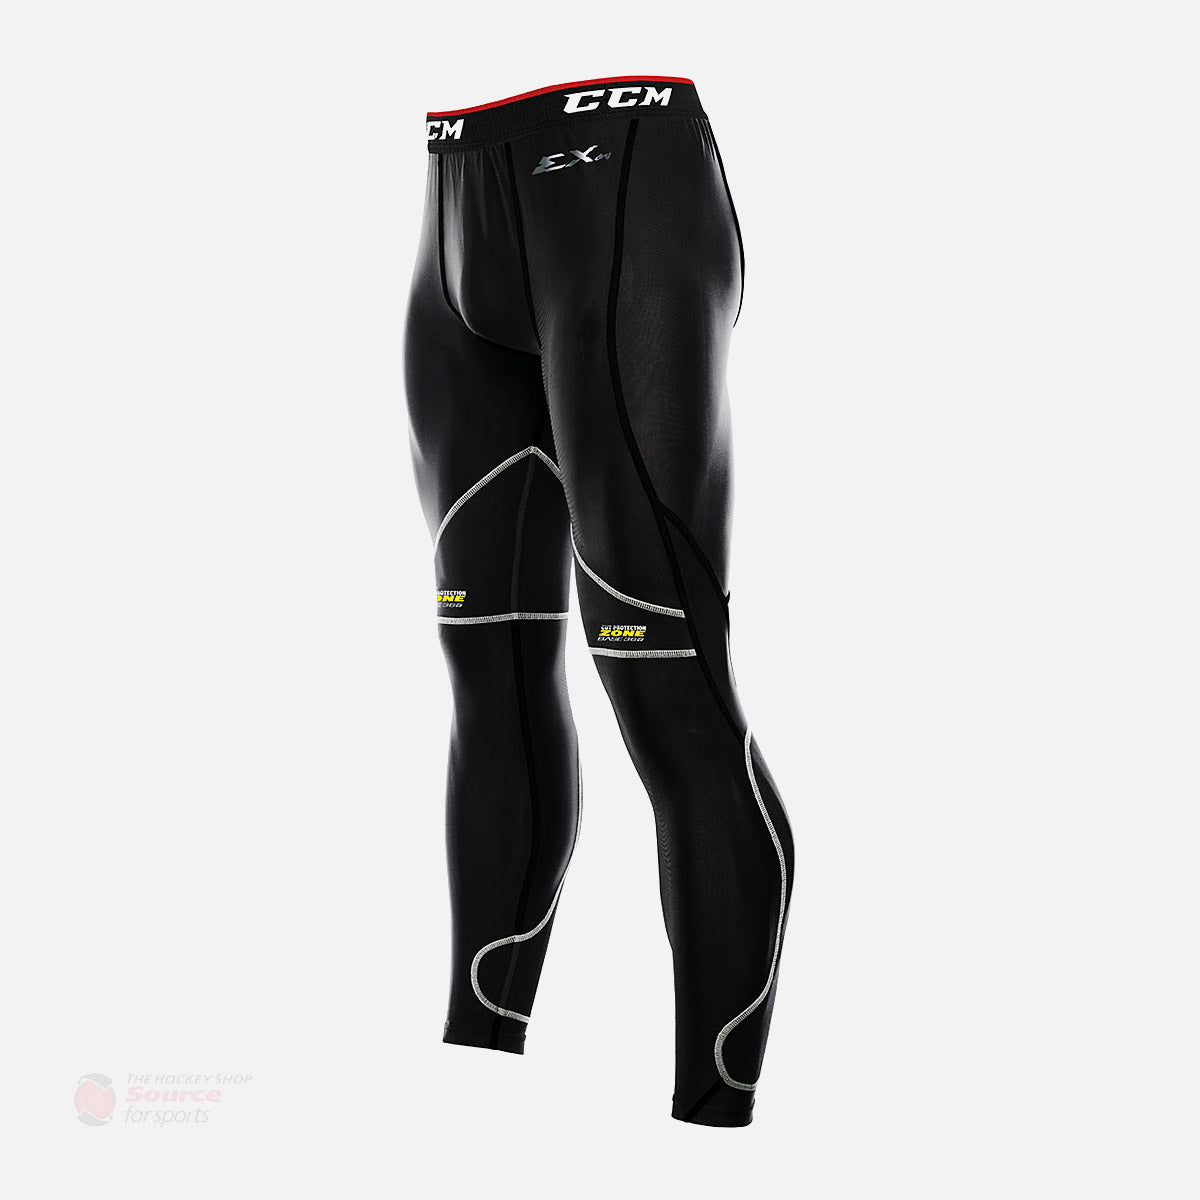 CCM Cut Resistant Senior Compression Goal Pants